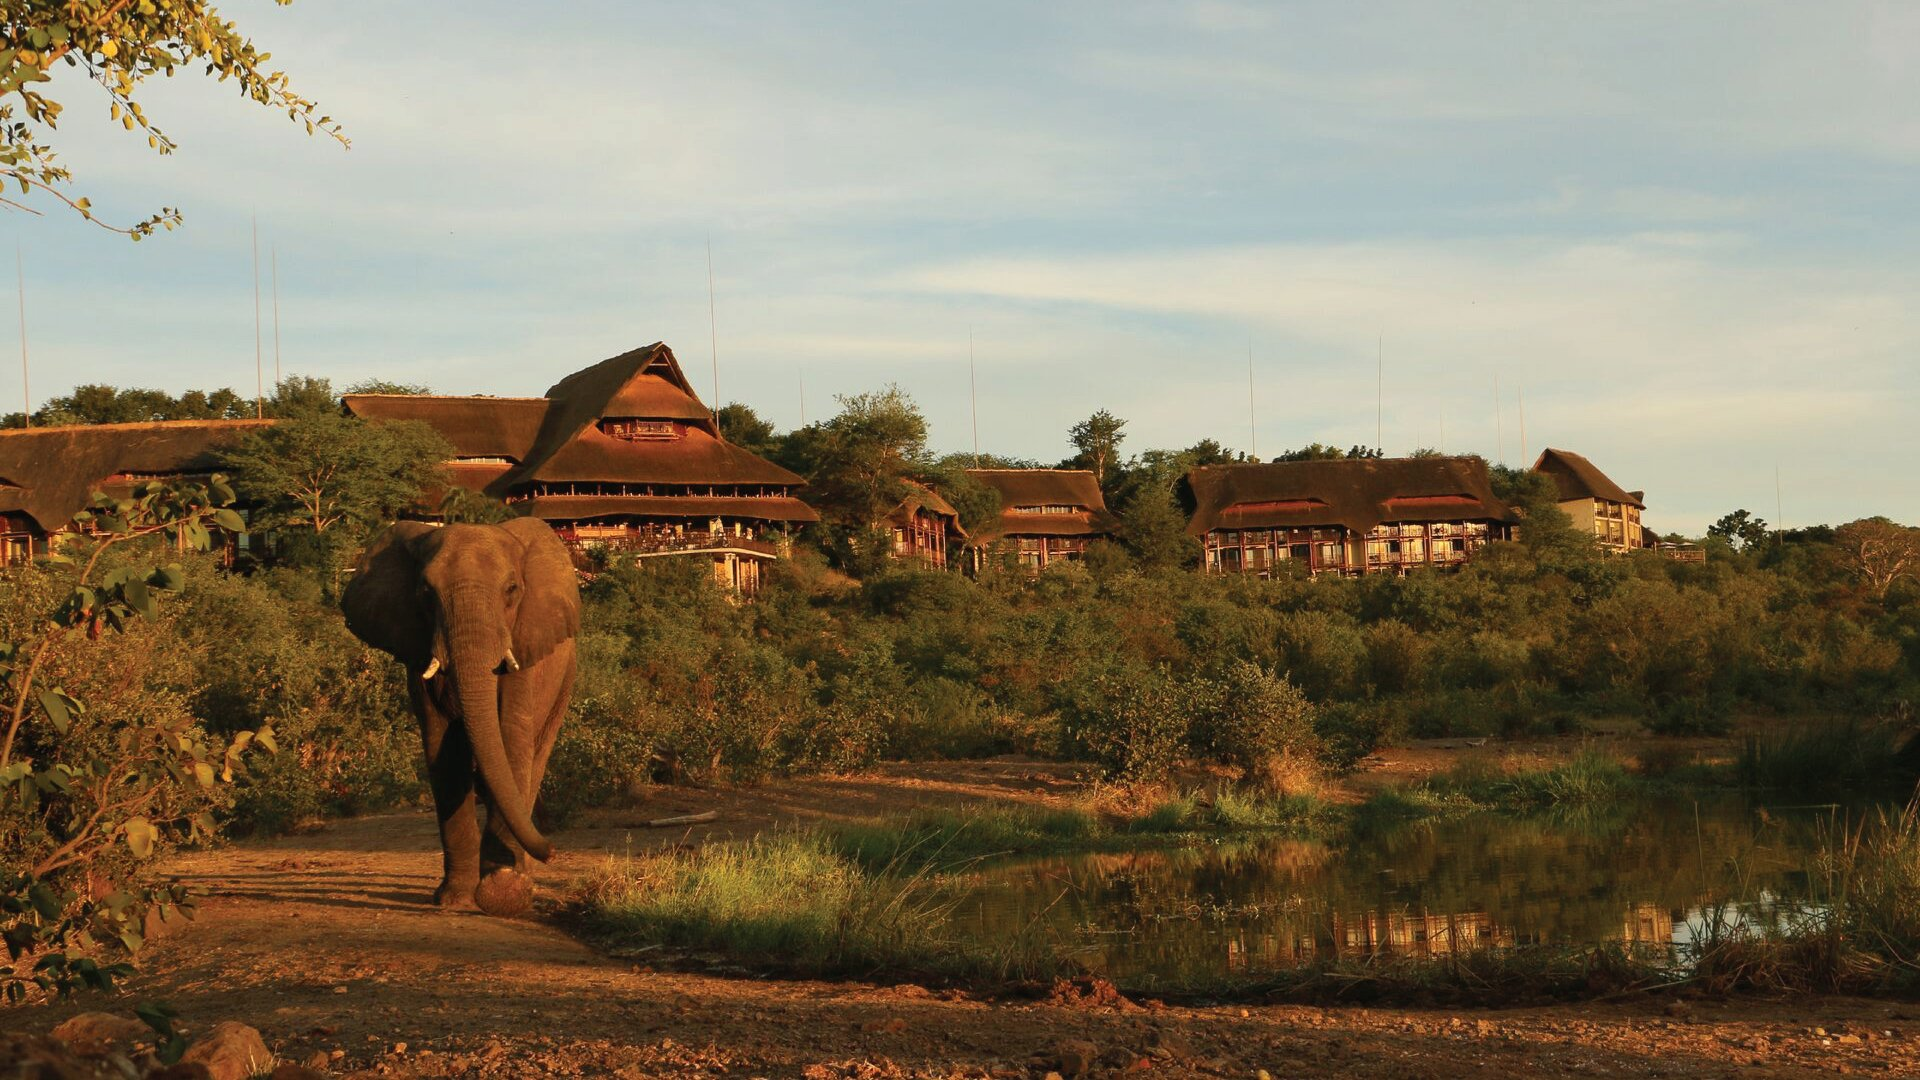 Victoria-Falls-Safari-Lodge-Hotel-Siduli-Hide